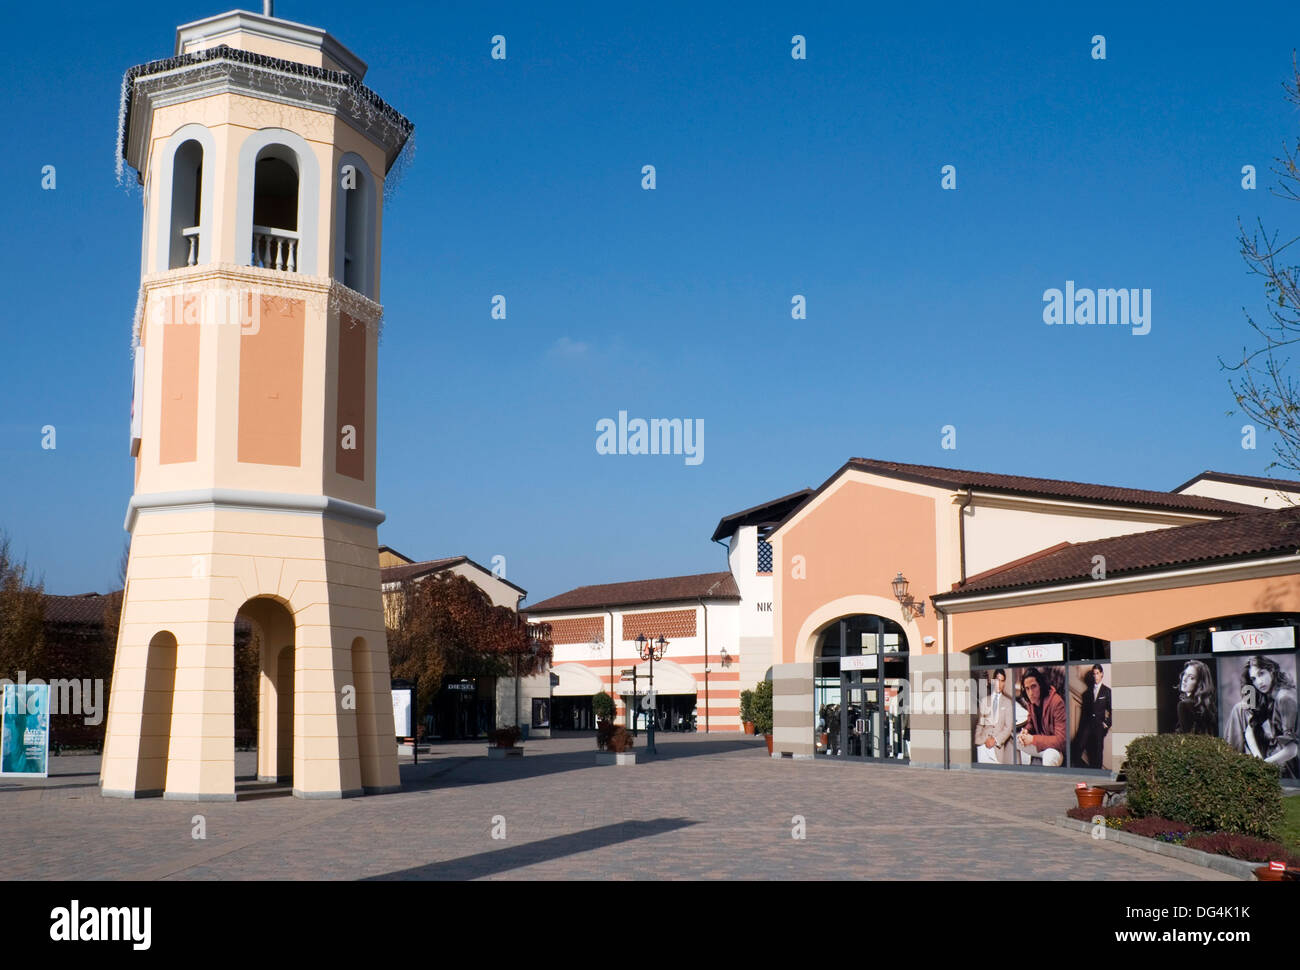 Serravalle Scrivia Outlet Shopping Mall Alessandria Piemont Italien ...